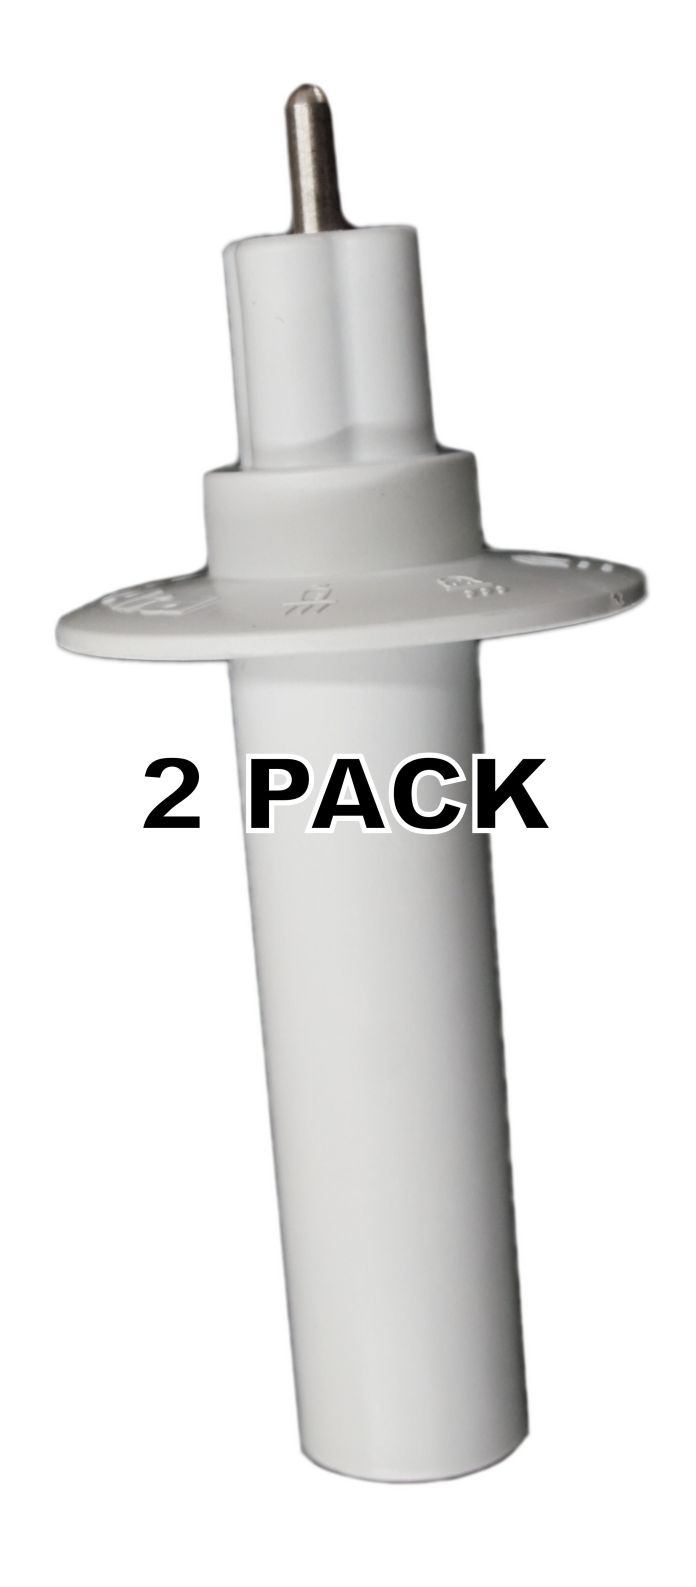 2 Pk, 9-Cup Food Processor Adapter for KitchenAid, AP6021874, W10466843